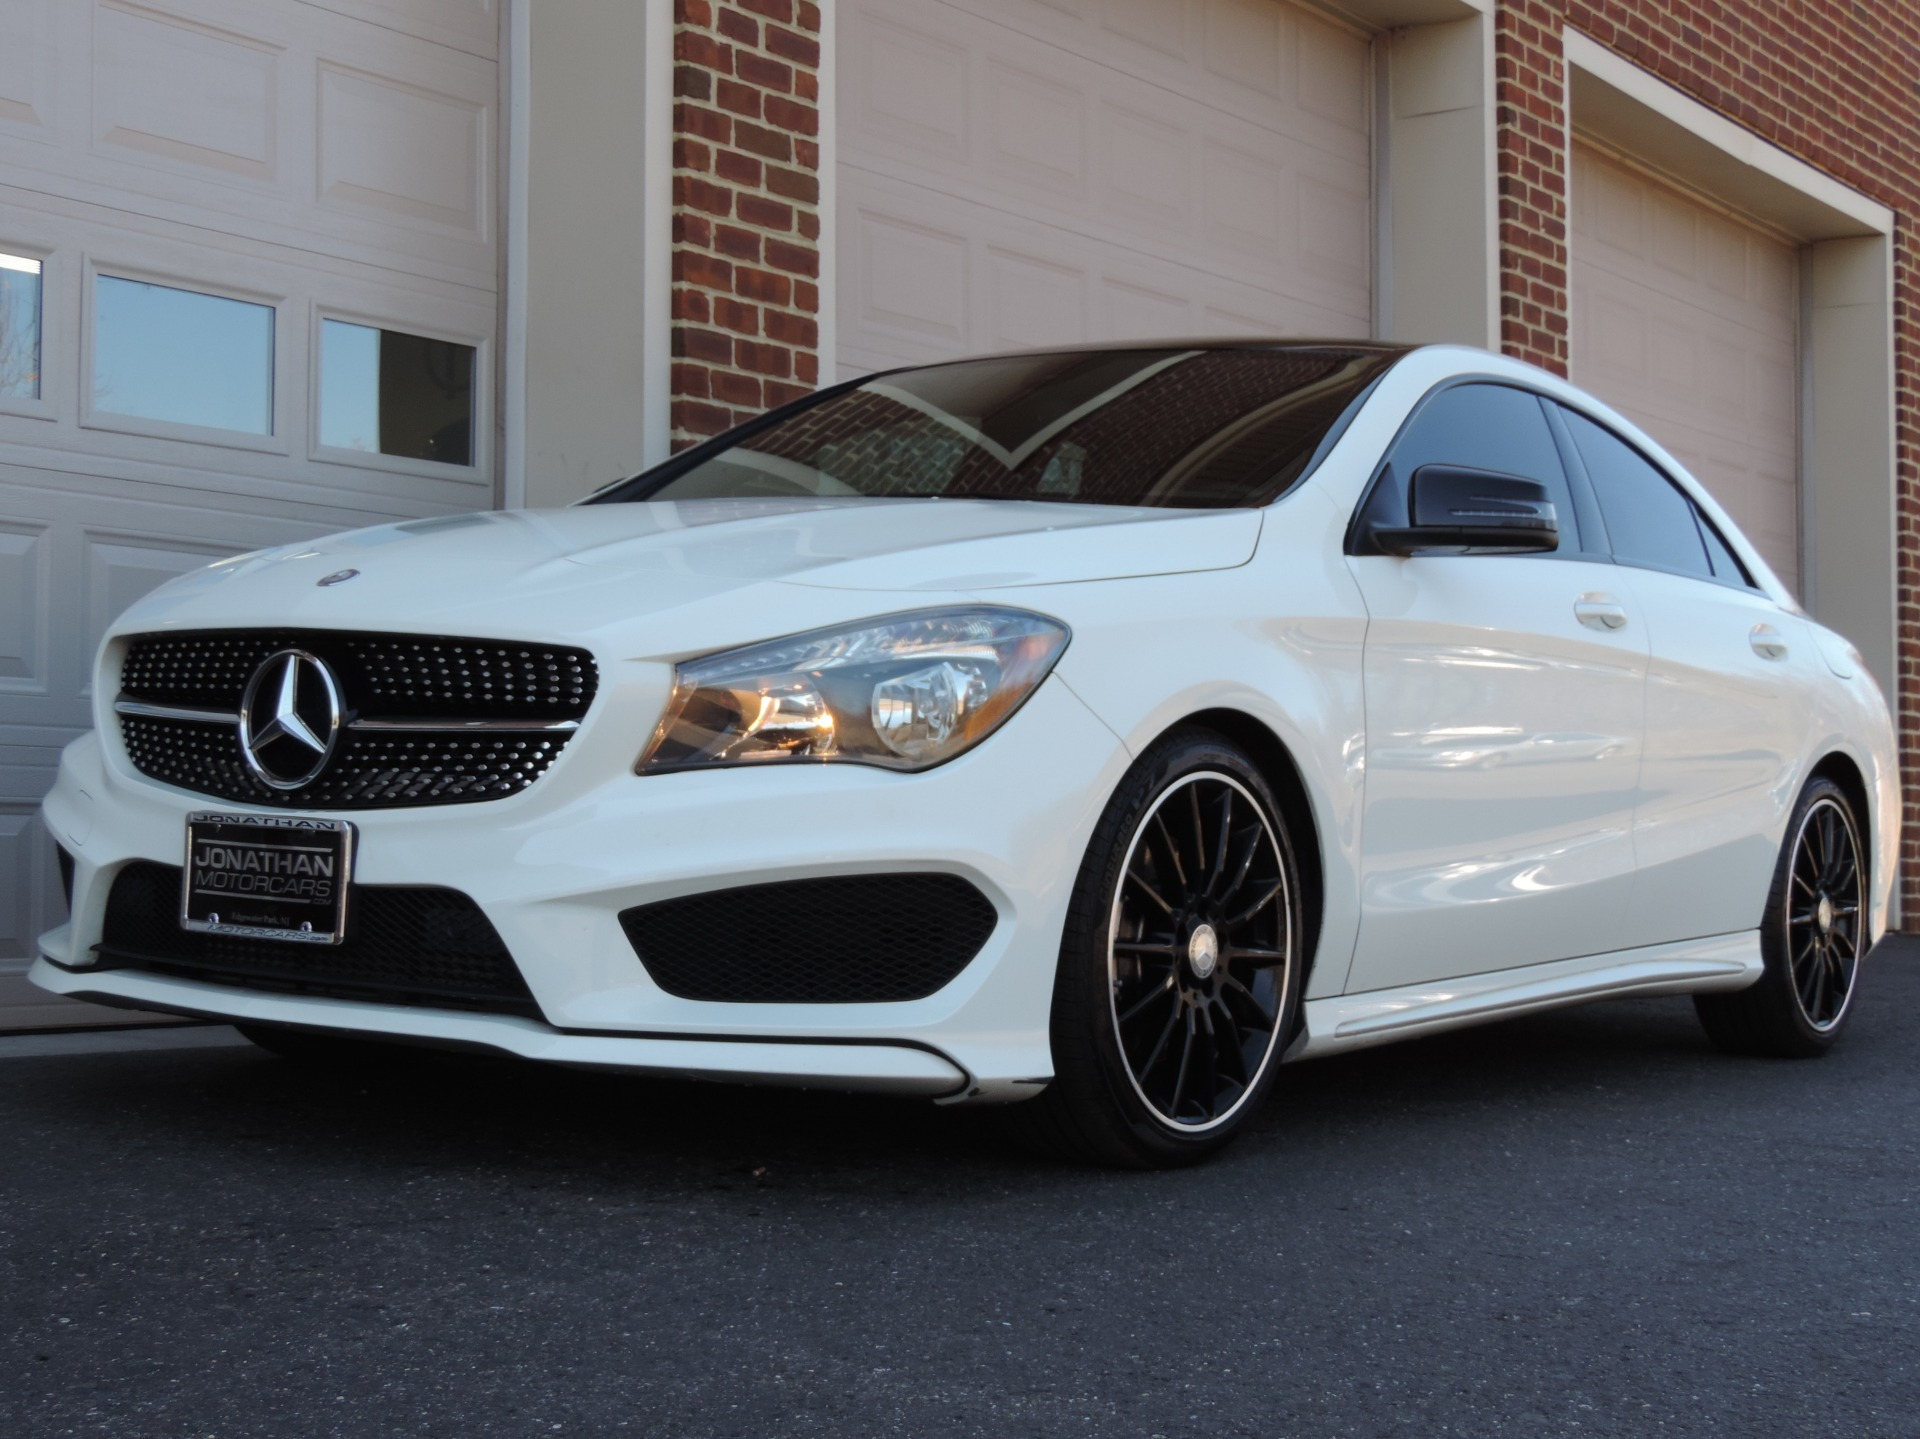 2016 mercedes benz cla cla 250 4matic stock 334175 for sale near edgewater park nj nj. Black Bedroom Furniture Sets. Home Design Ideas